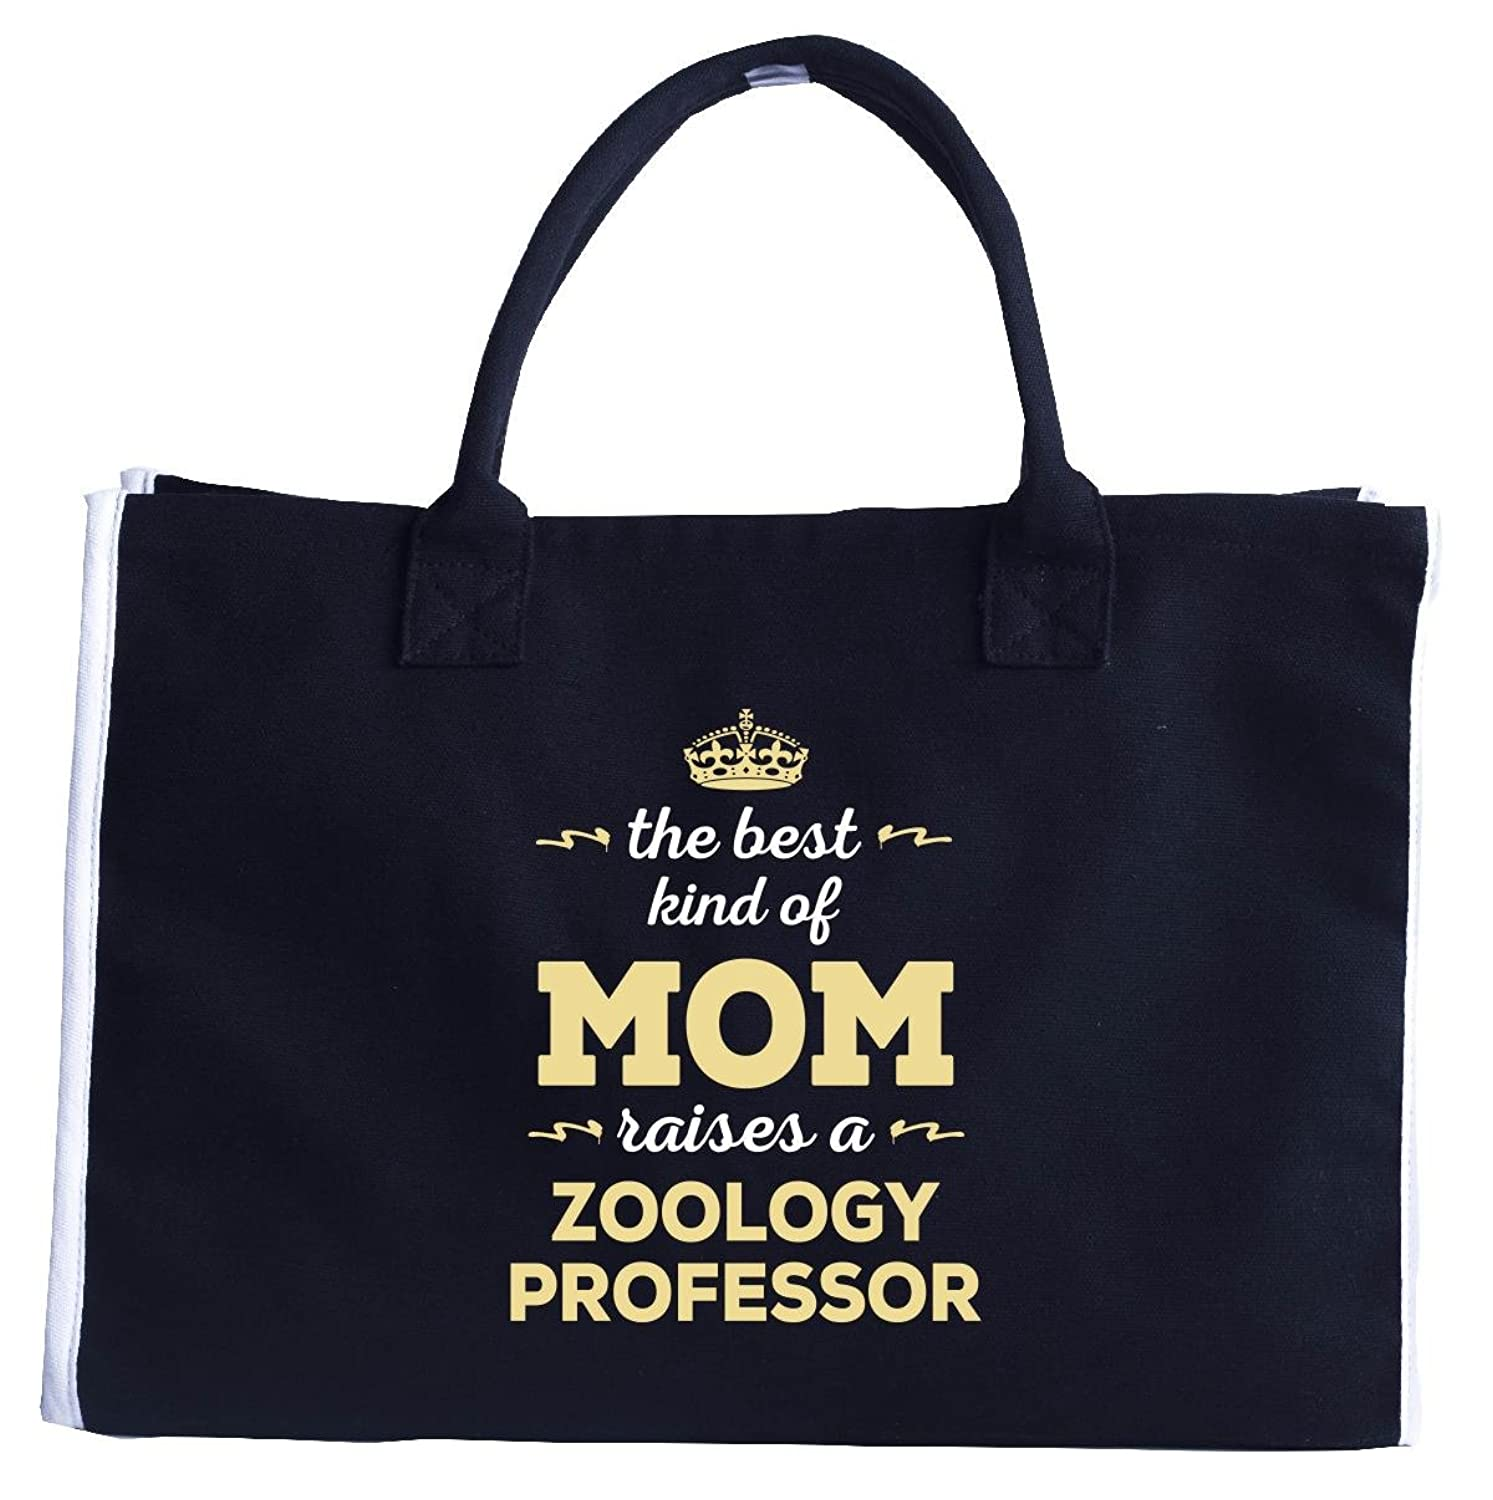 Best Kind Of Mom Raises A Zoology Professor. Gift For Mom - Fashion Tote Bag